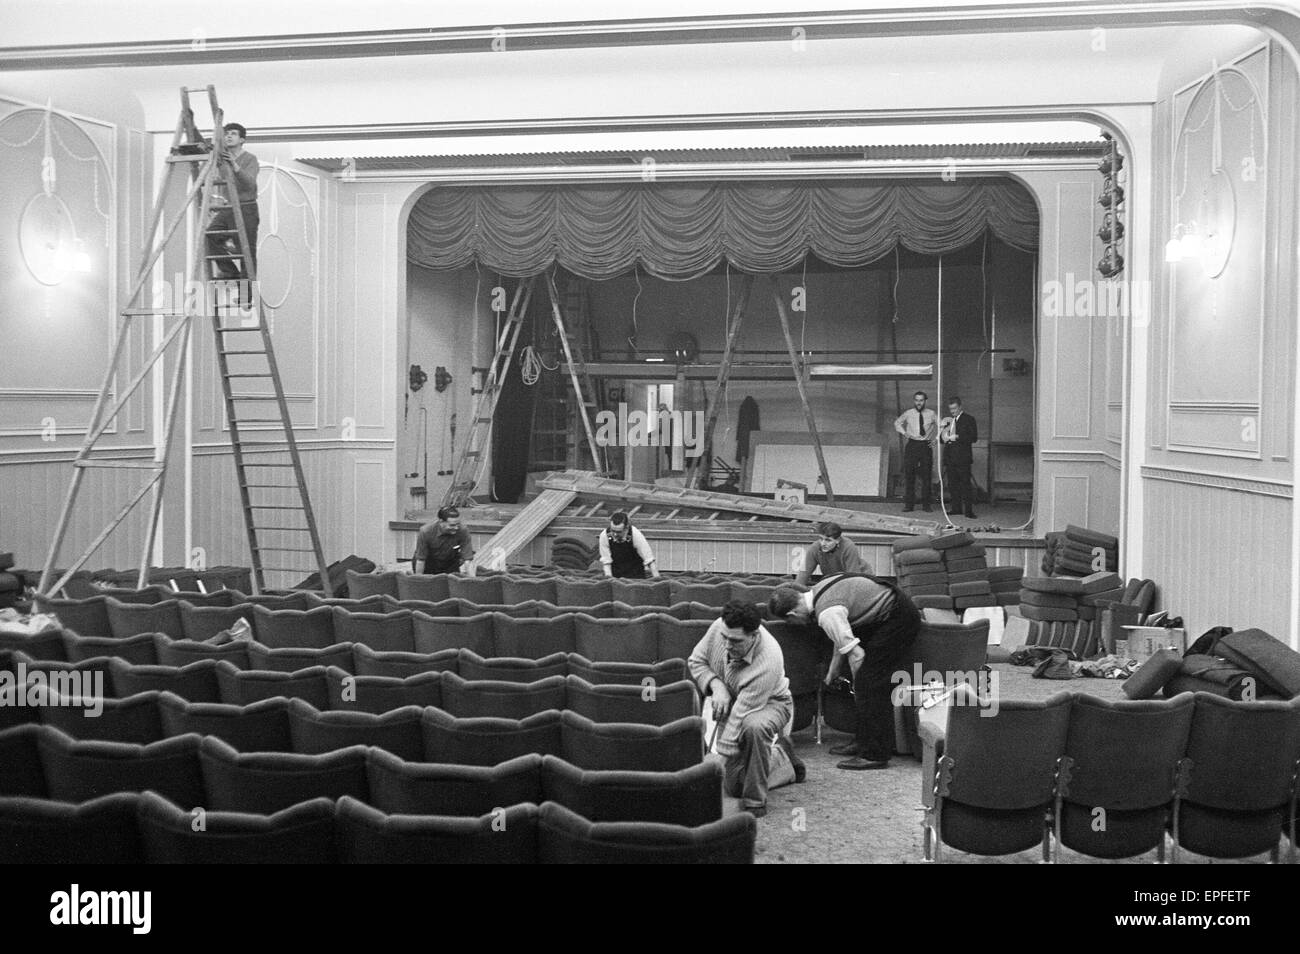 Interior view of The Prince Charles Cinema in Leicester Square during its construction. 6th December 1962. - Stock Image